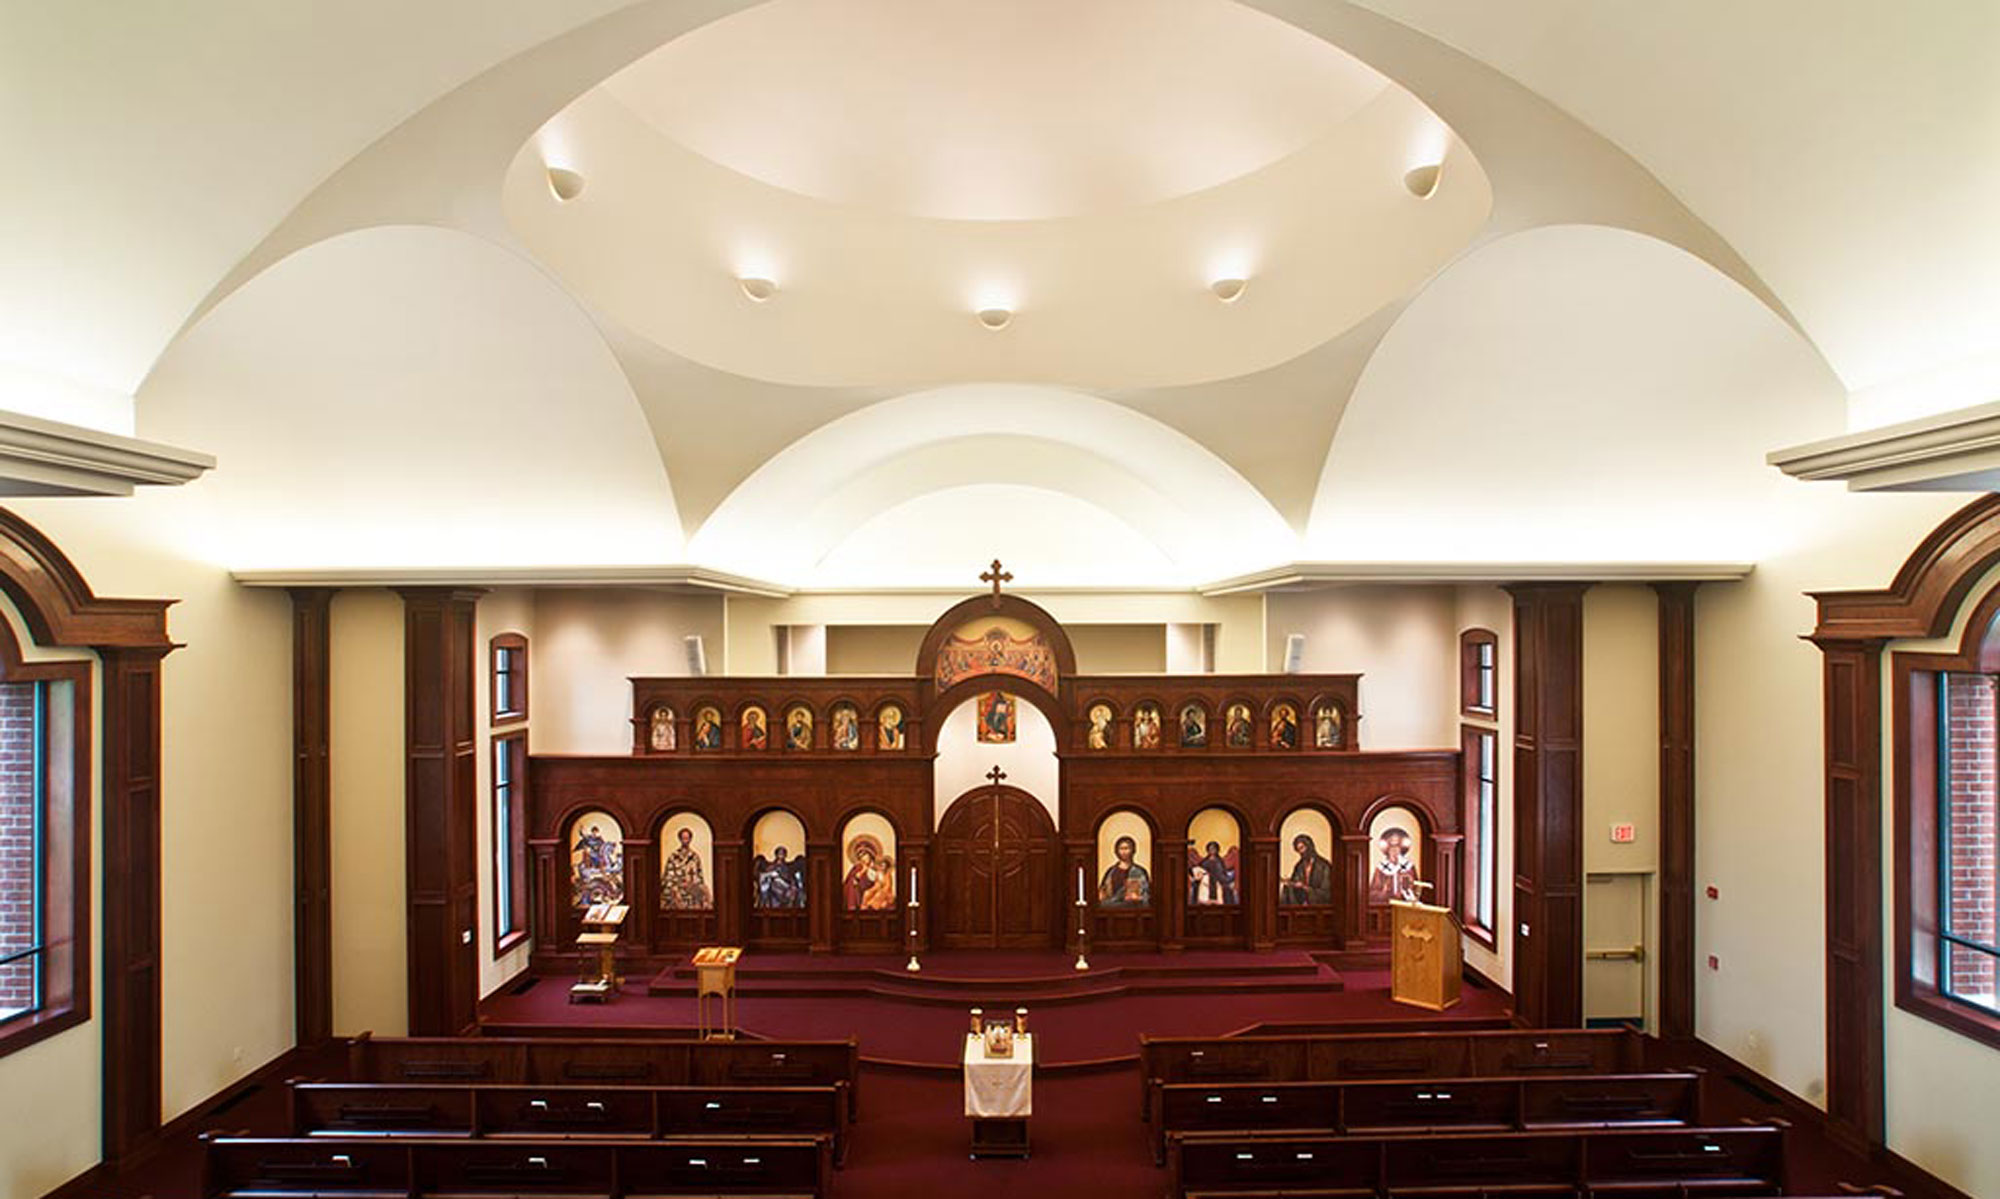 St. John Chrysostom Antiochian Orthodox Church Interior